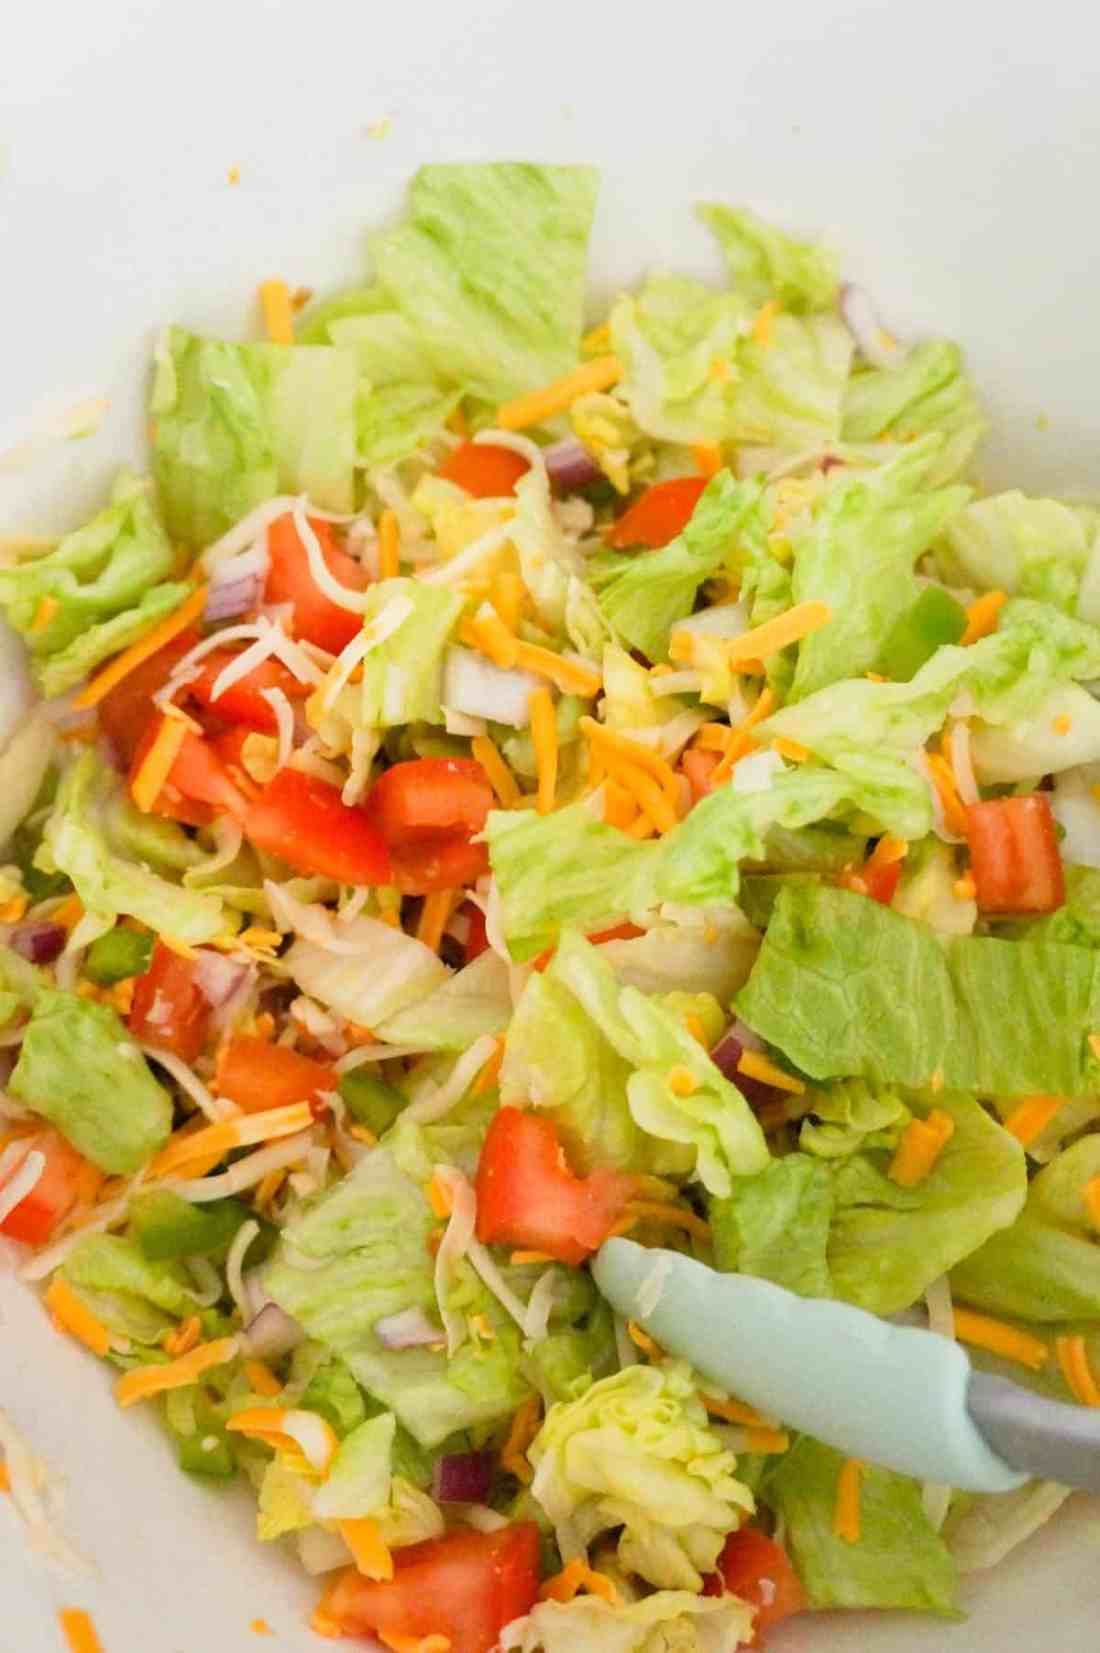 tossed salad in a mixing bowl